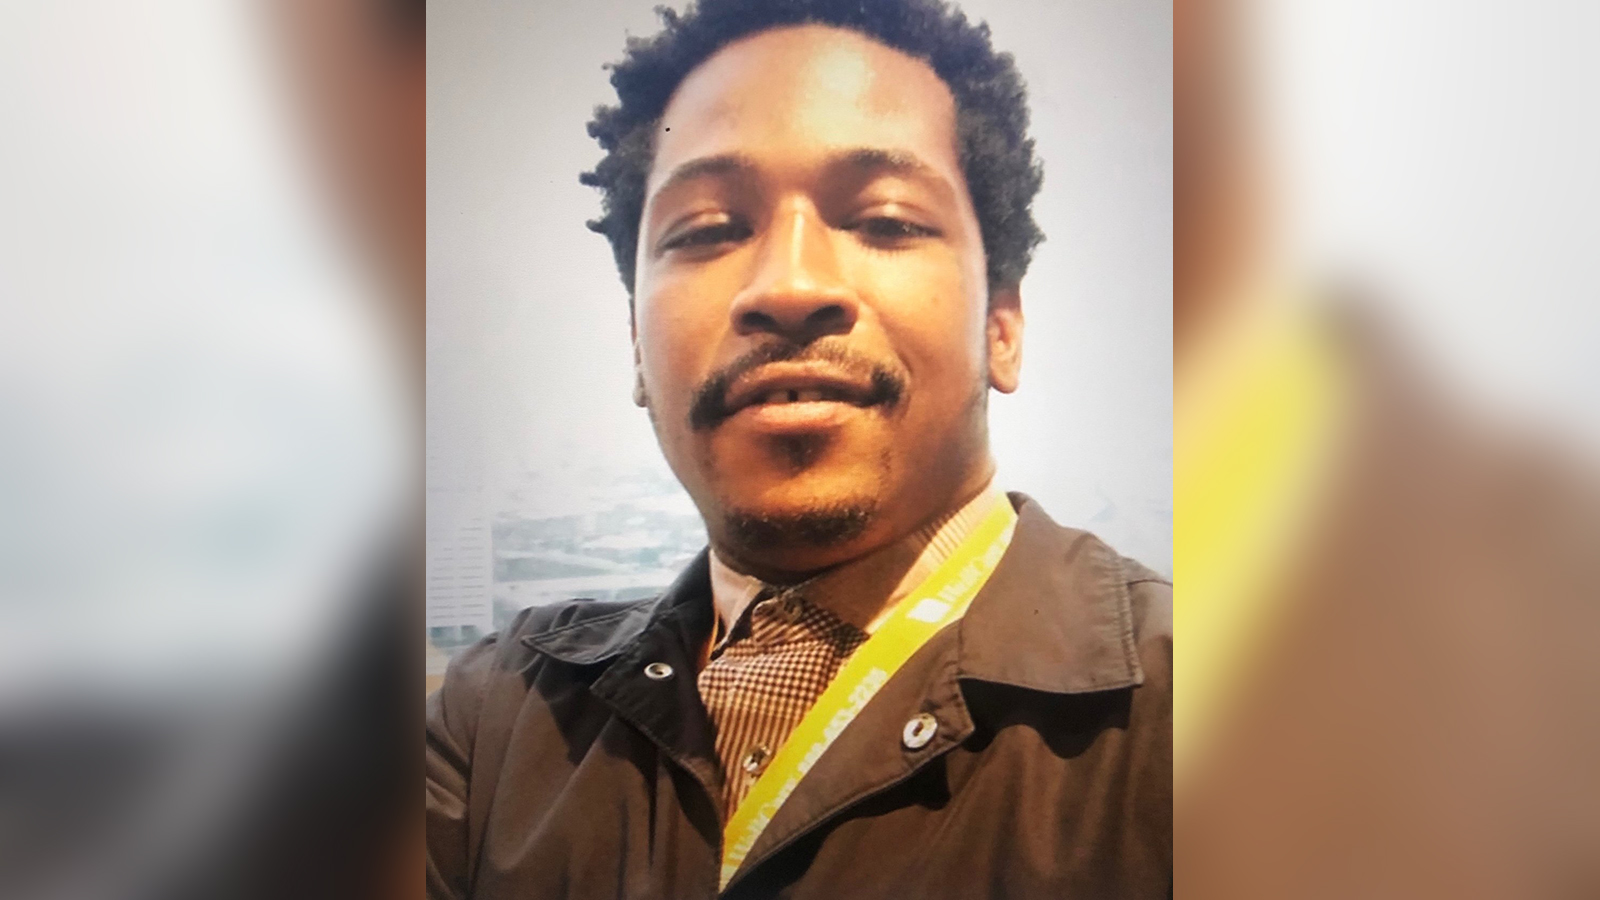 RayshardBrookswas fatally shot by a police officer in the parking lot of a Wendy's in southeast Atlanta on June 12.